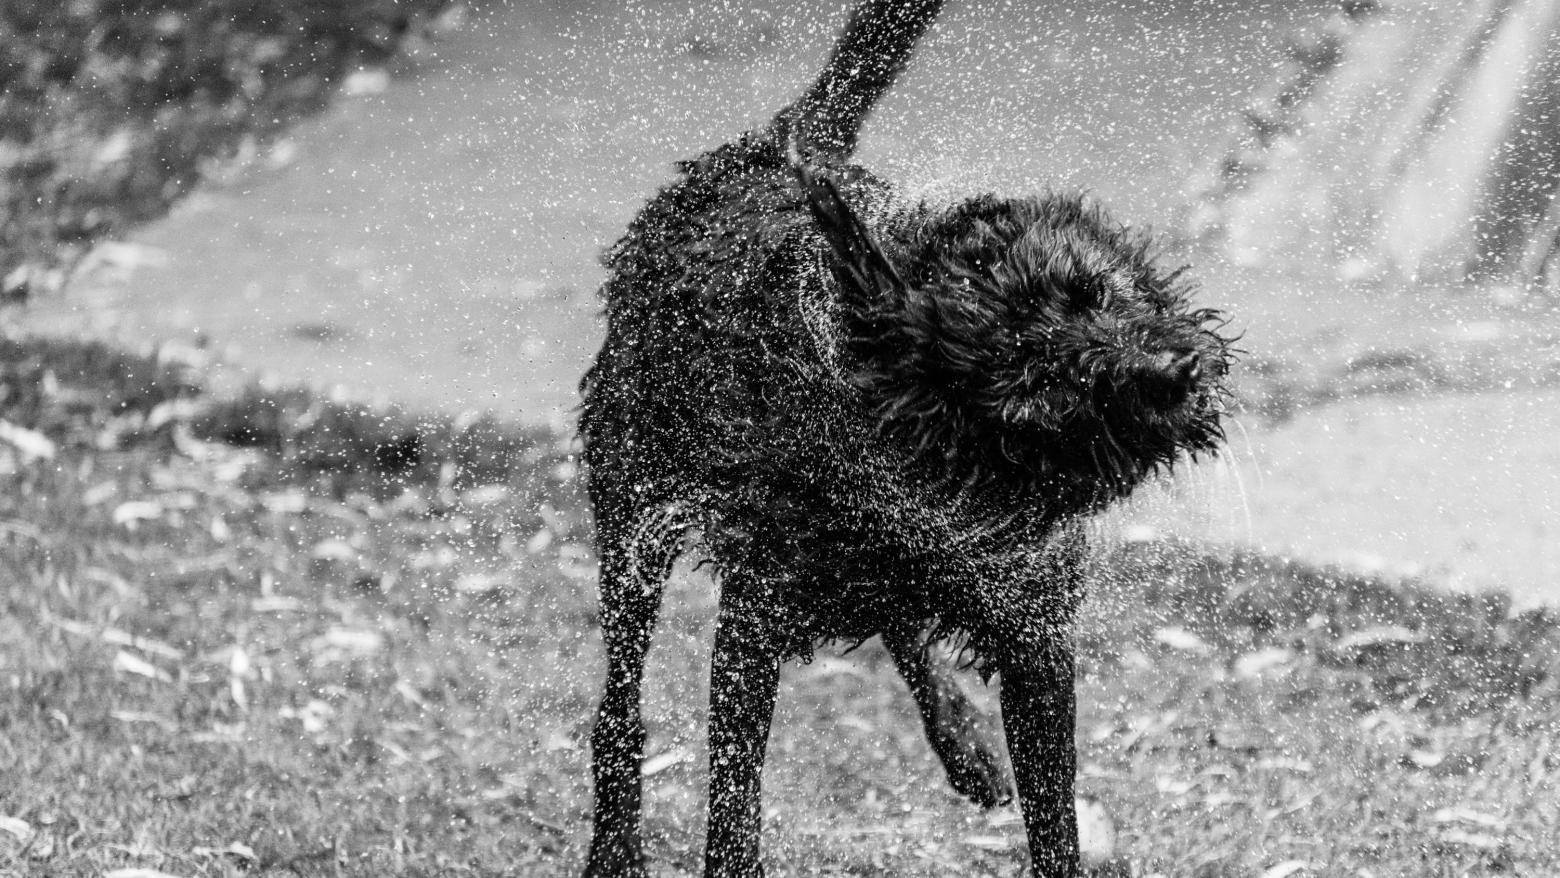 Dog shaking water off. Photo by Cathy Sly of Maple Valley, Washington.